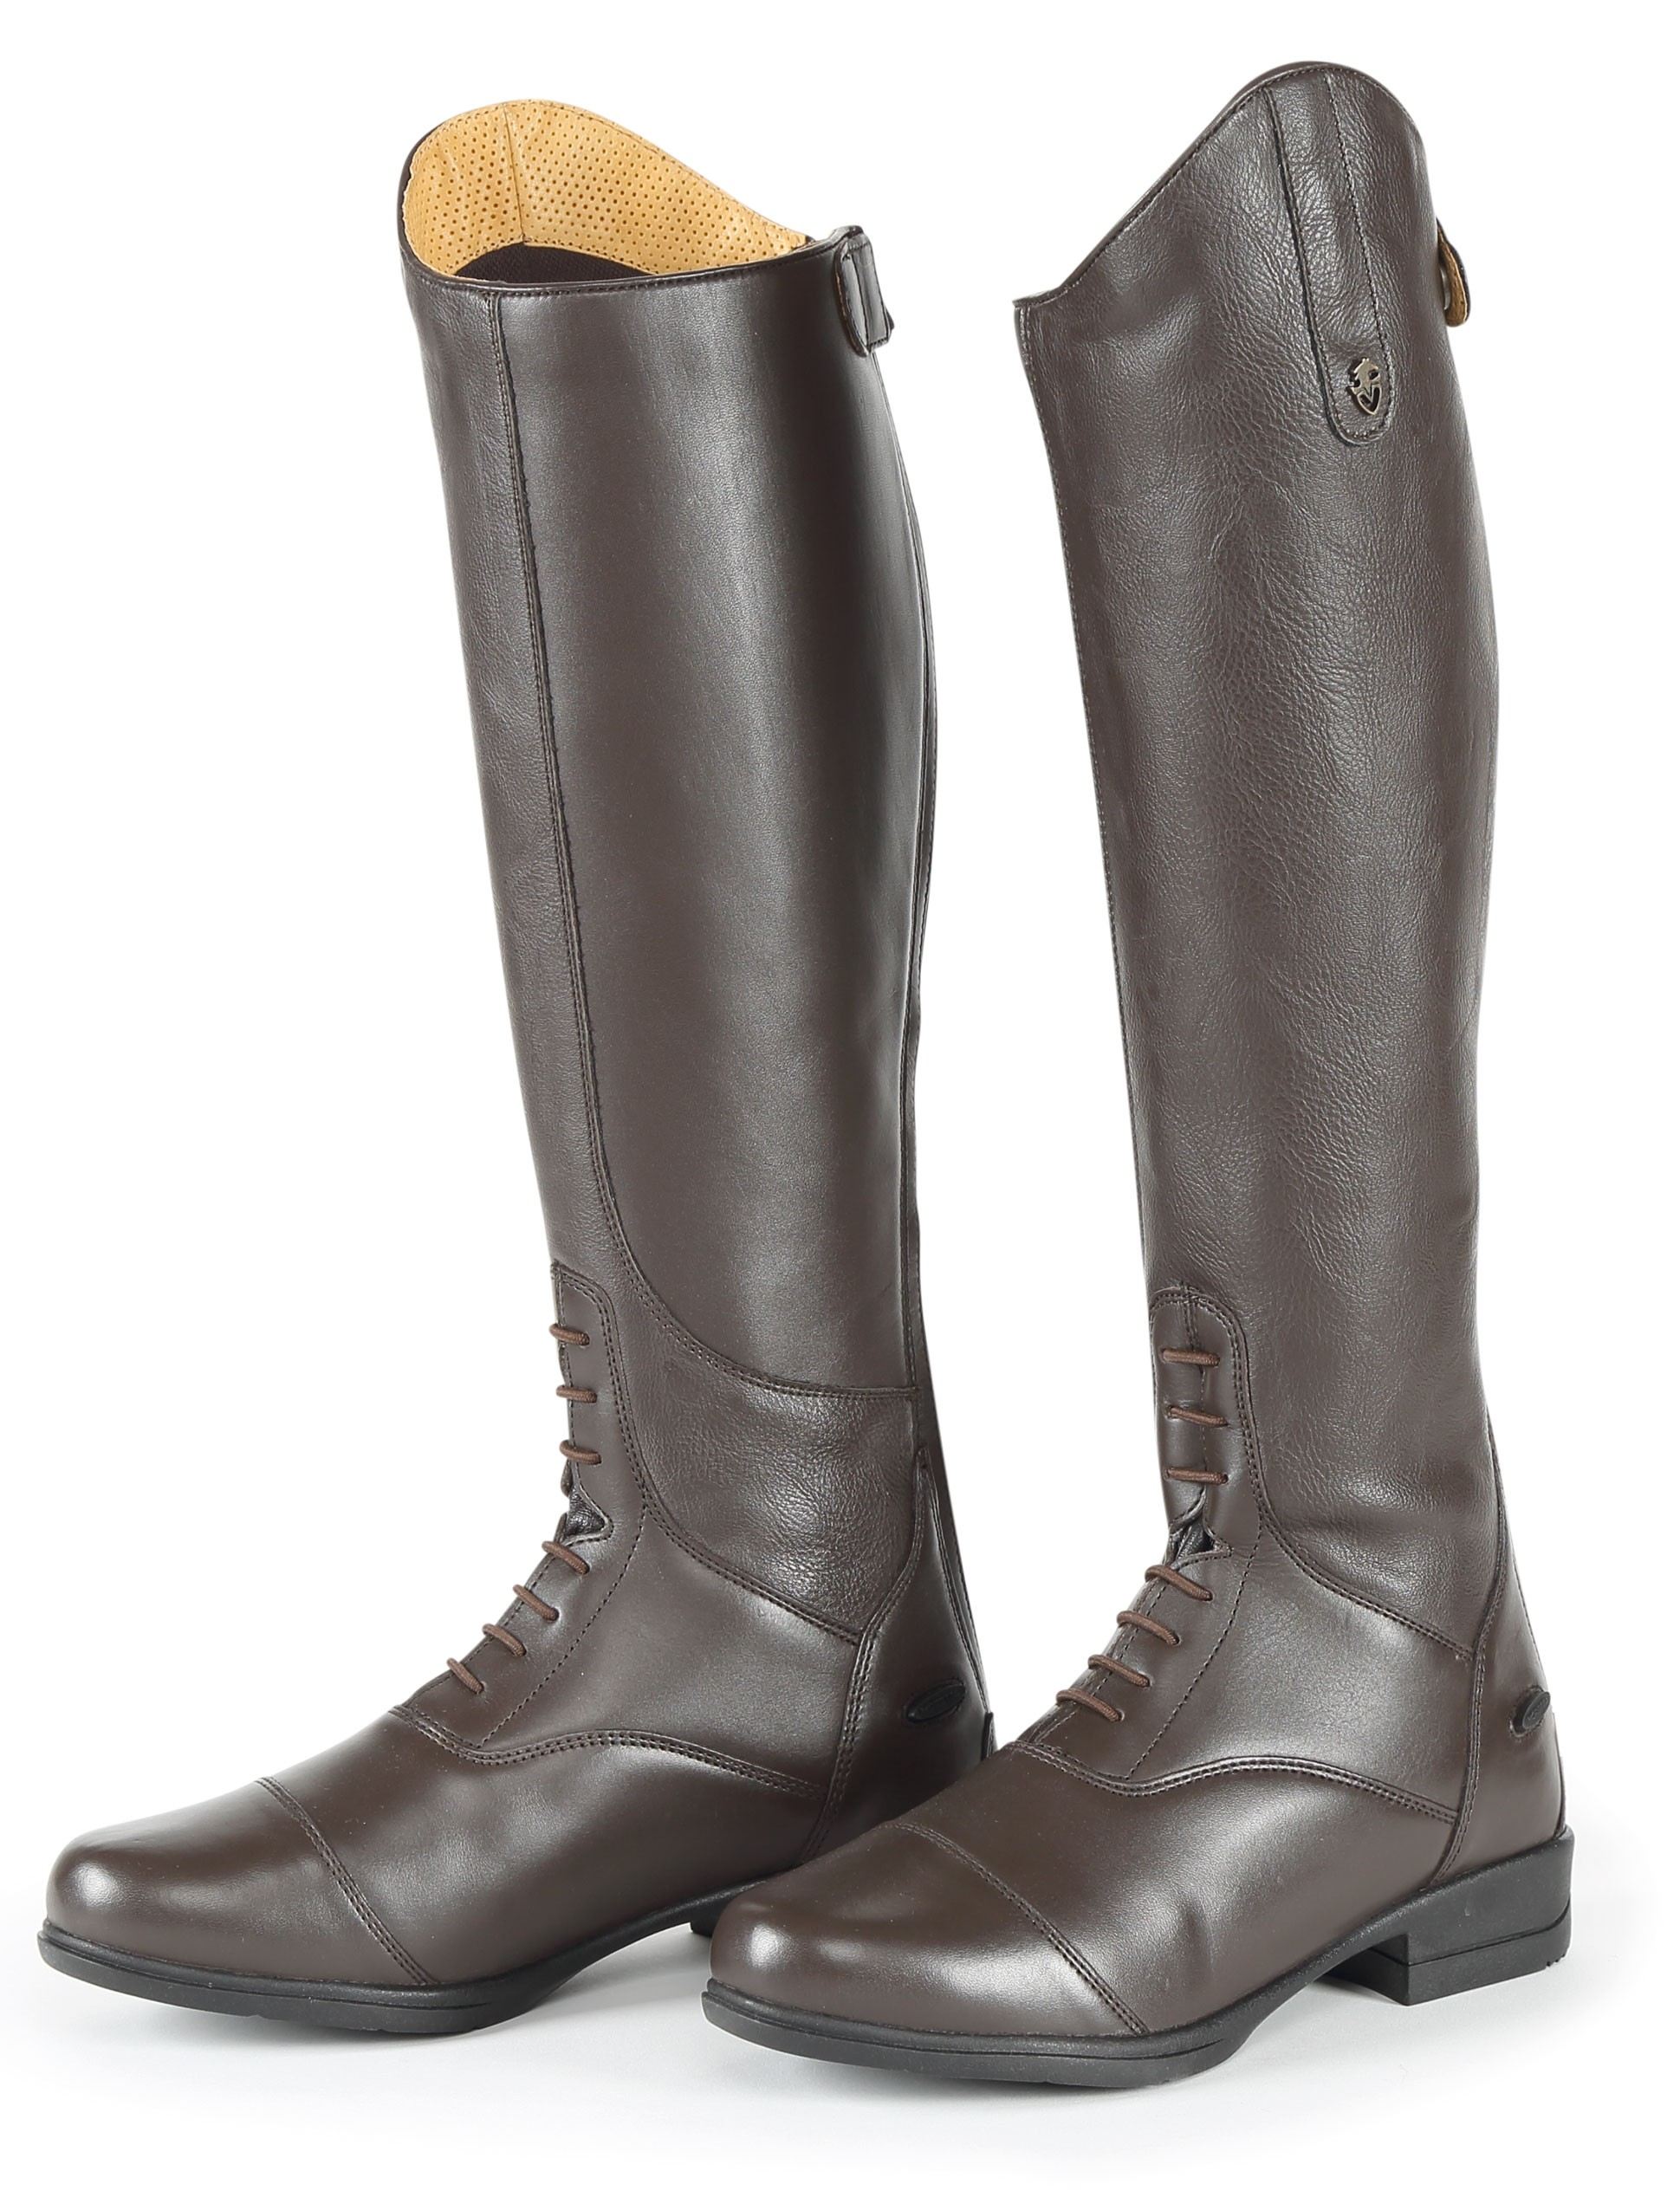 Shires Adults Moretta Gianna Leather Riding Boots  - Thomas Irving's equestrian and accessories store  Shires Adults Moretta Gianna Leather Riding Boots